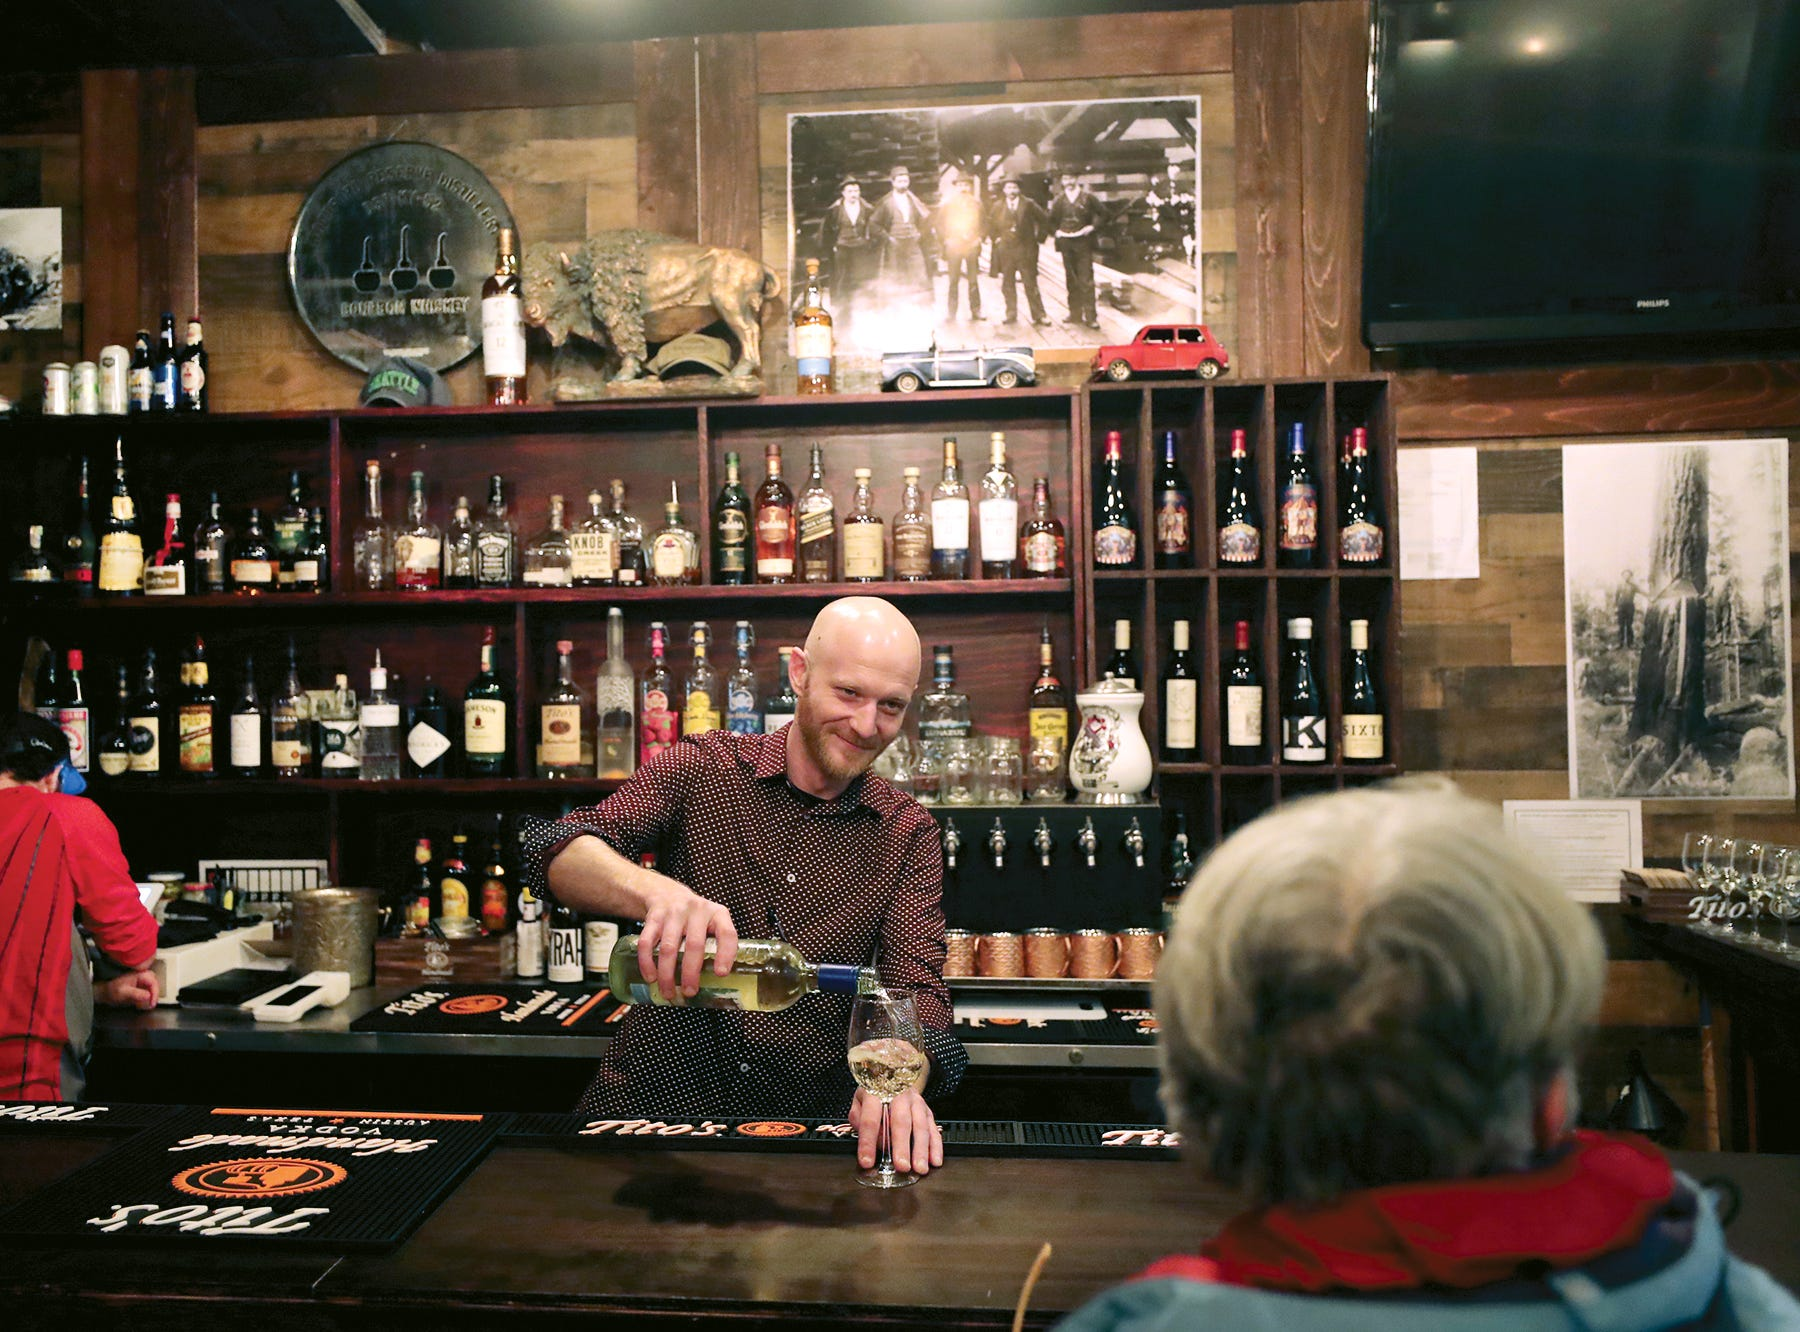 Tanner Baughman has launched a couple new endeavors on the island: Timber, a new steakhouse/bar, in the Bainbridge Pavilion, alongside a new Uber Eats imitator called IslandBite. Drivers deliver from Timber and a handful of other Bainbridge restaurants straight to your door.He is filling a drink for a customer at the bar on Wednesday, October 31, 2018. The restaurant / bar has a wood theme inside.